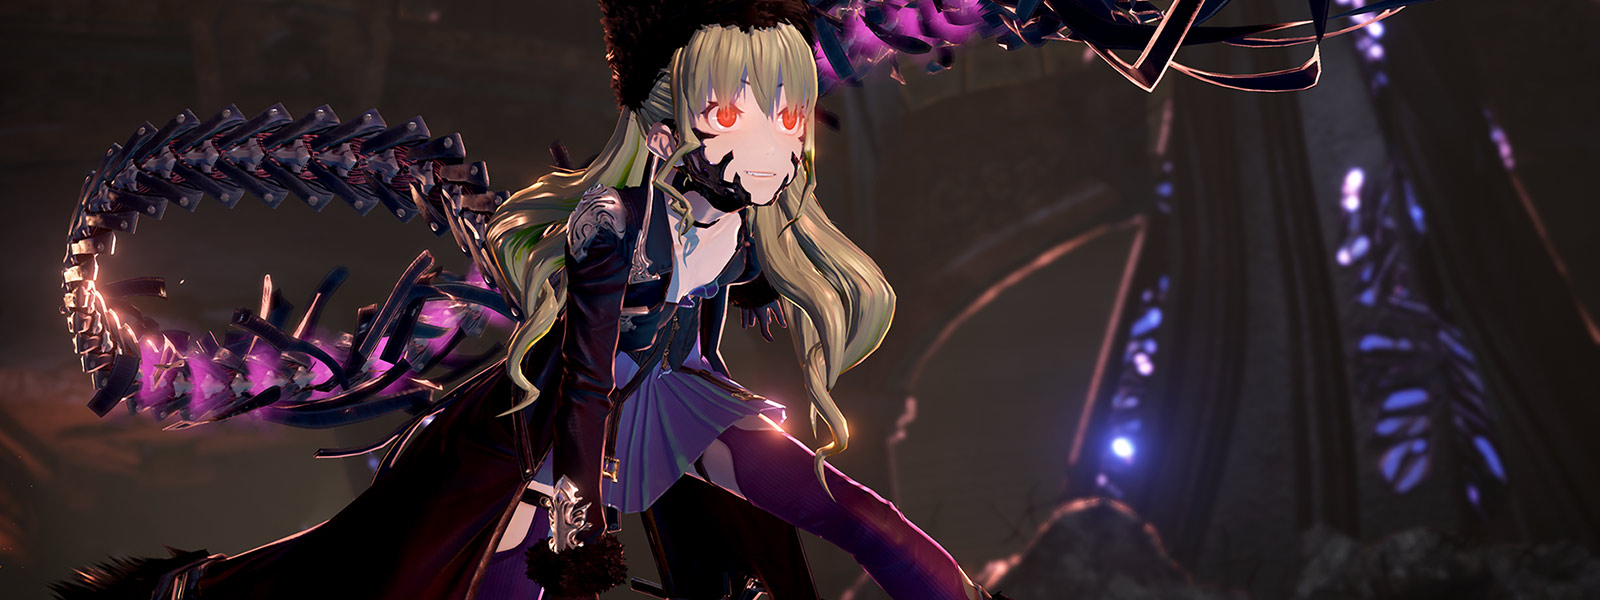 Code Vein character waves tail-like weapon called a Blood Veil